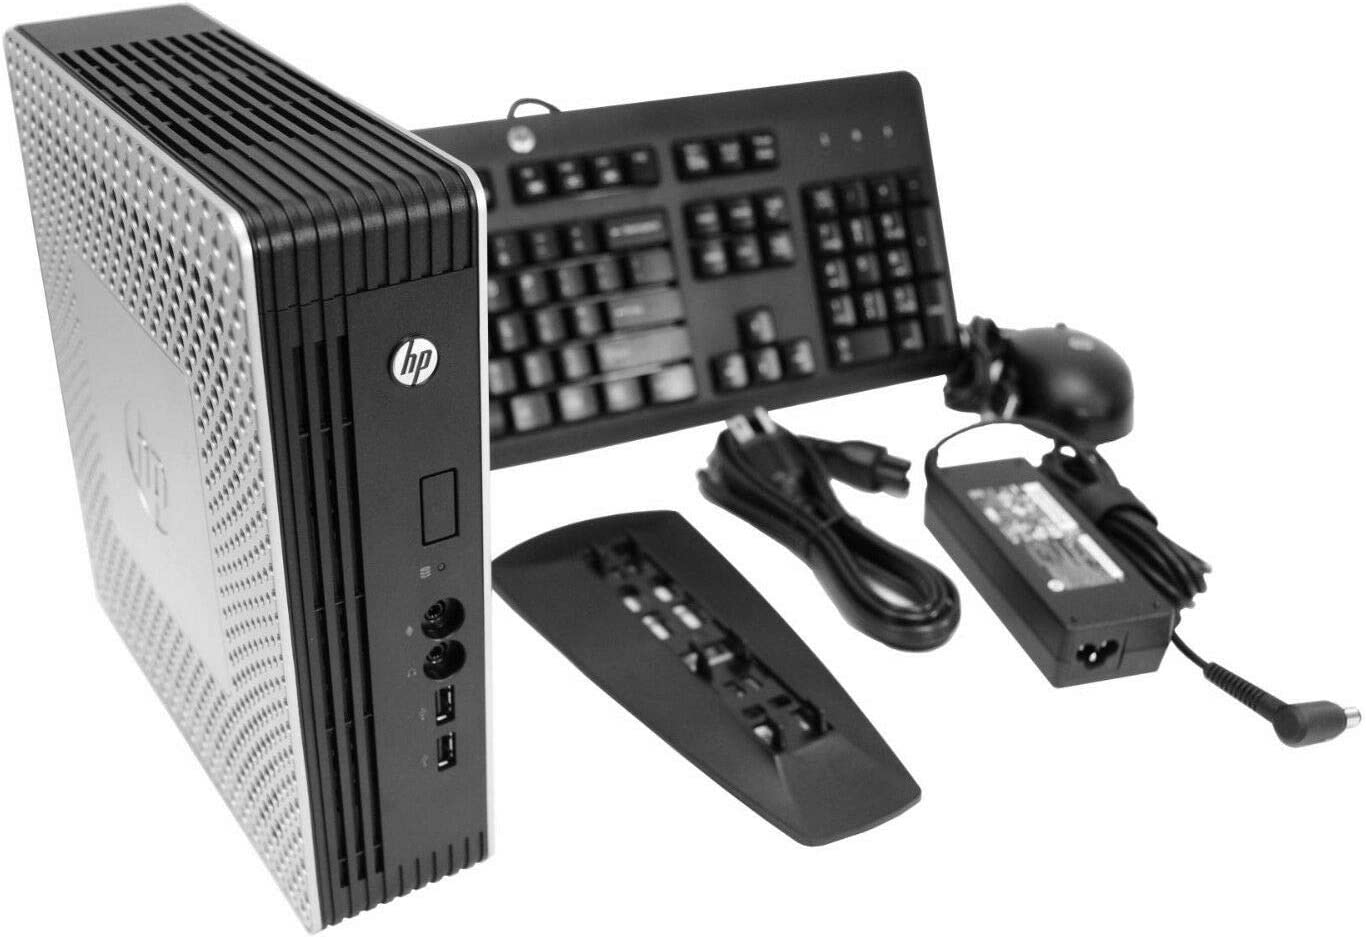 HP T610 Plus Thin Client (C9Y36UP#ABA) | AMD 1.65GHz Dual Core - A55E CPU / 4GB RAM / 4GB SSD / ThinPro OS (Renewed)